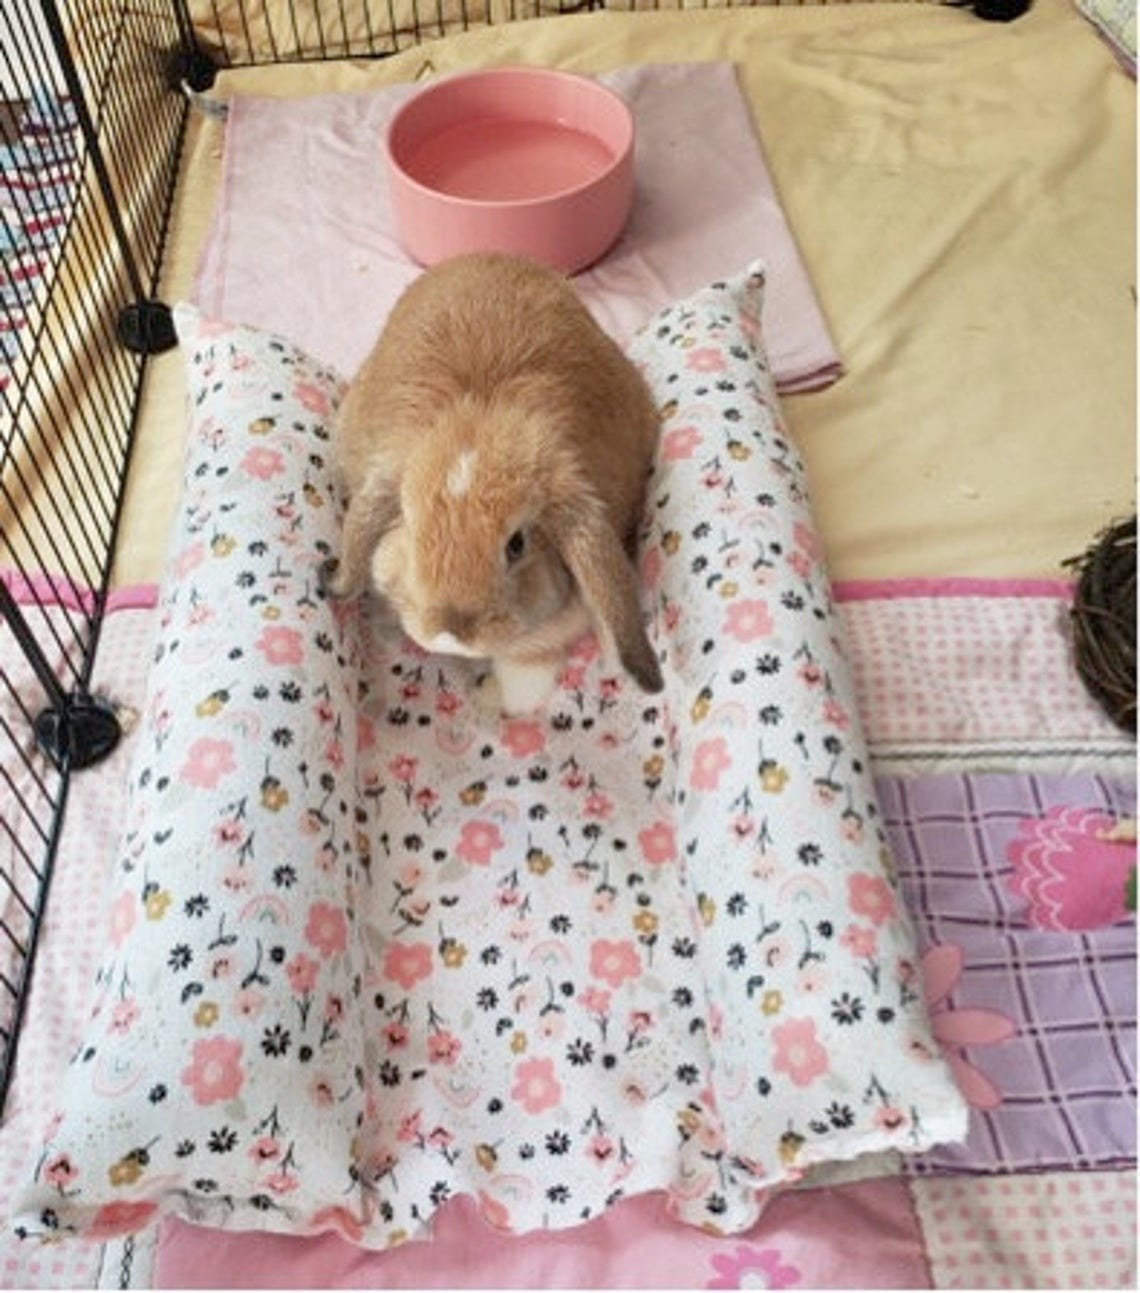 a lop in the white and pink floral rectangular bed with raised sides